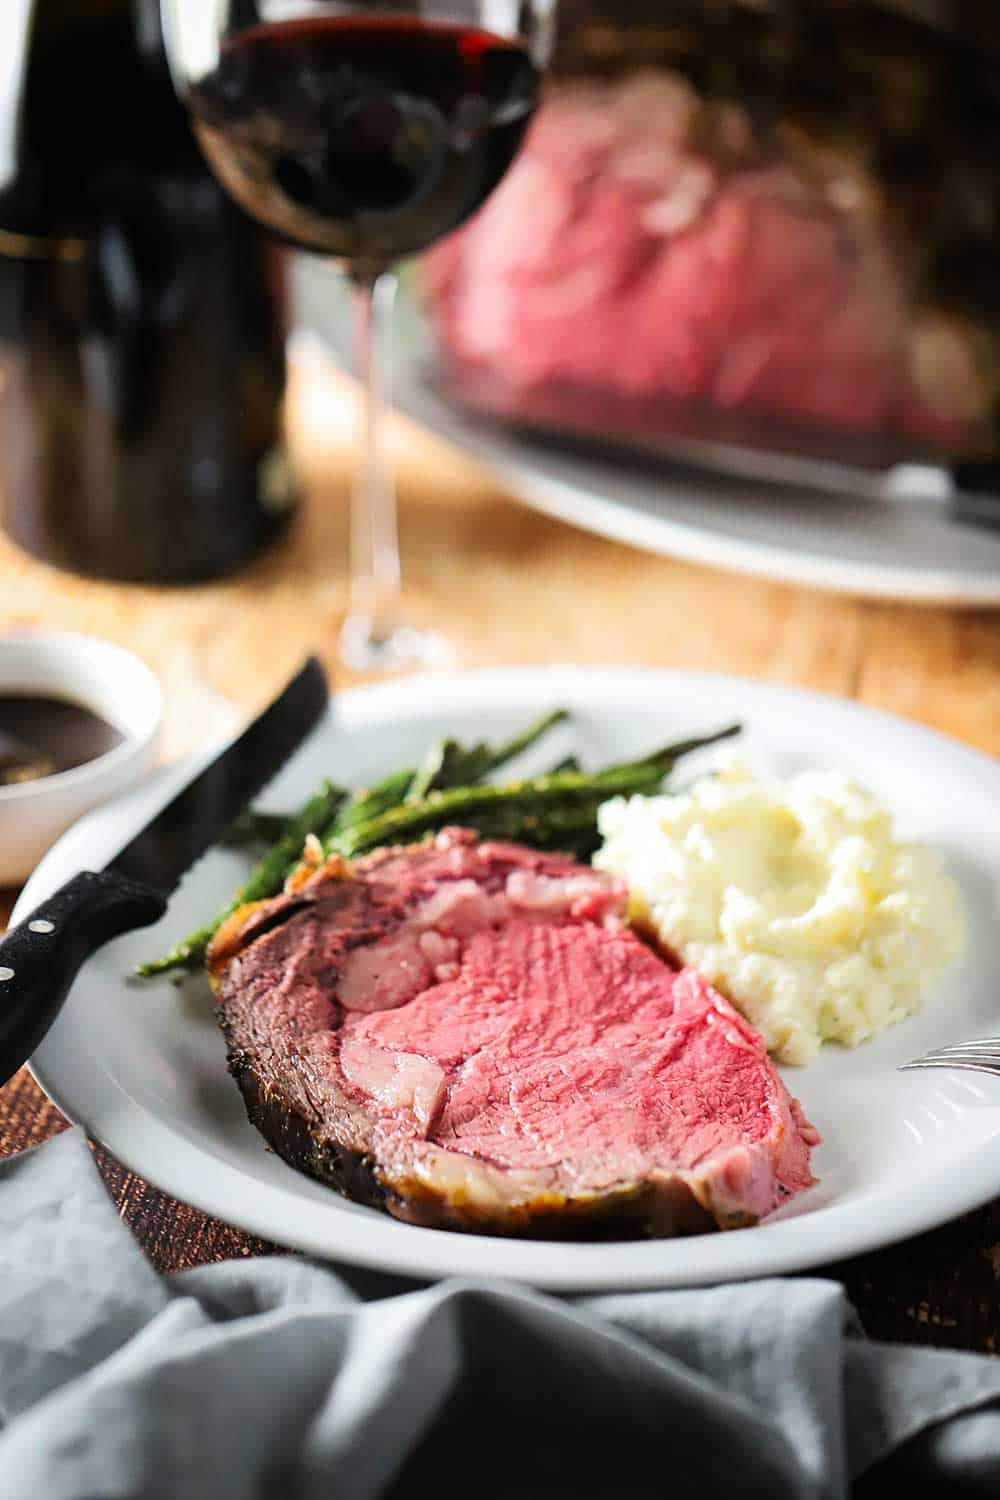 A white dinner plate filled with a slice of roast beef next to helping of mashed potatoes and green beans.